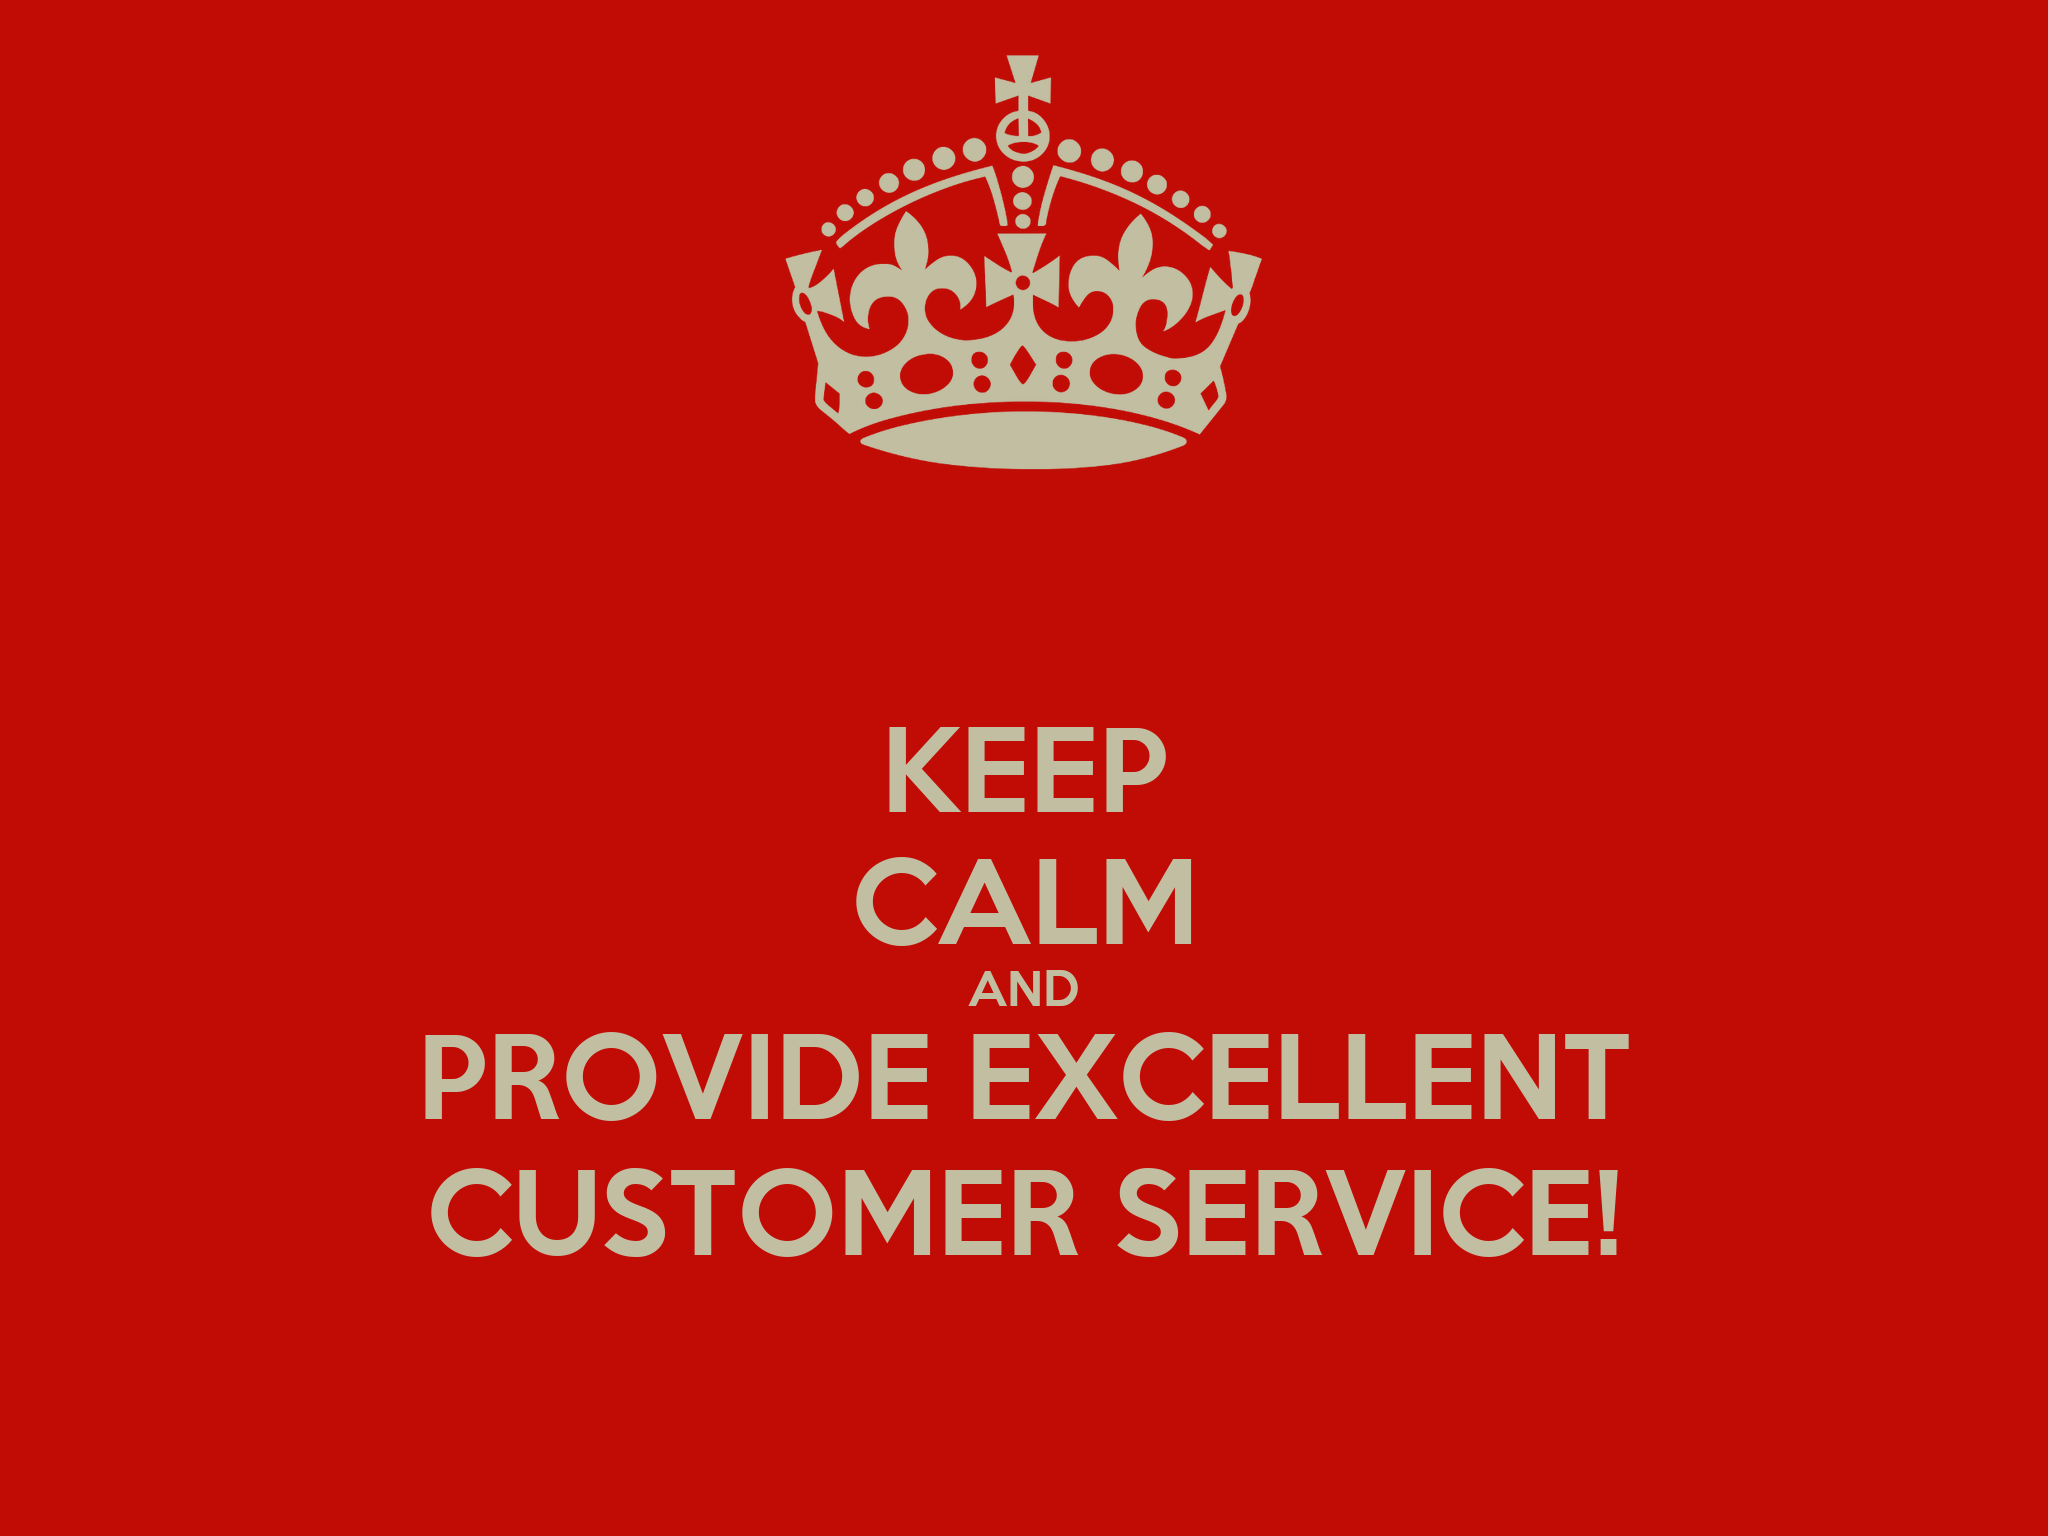 describe how to build and maintain effective service delivery One of the best ways to deliver excellent customer service is to provide fast customer support  //googl/sxnnno ) will help you understand their approach to delivering effective customer service reply  the importance of customer satisfaction coupled with excellent delivery of goods and services can not be underestimated because from it.